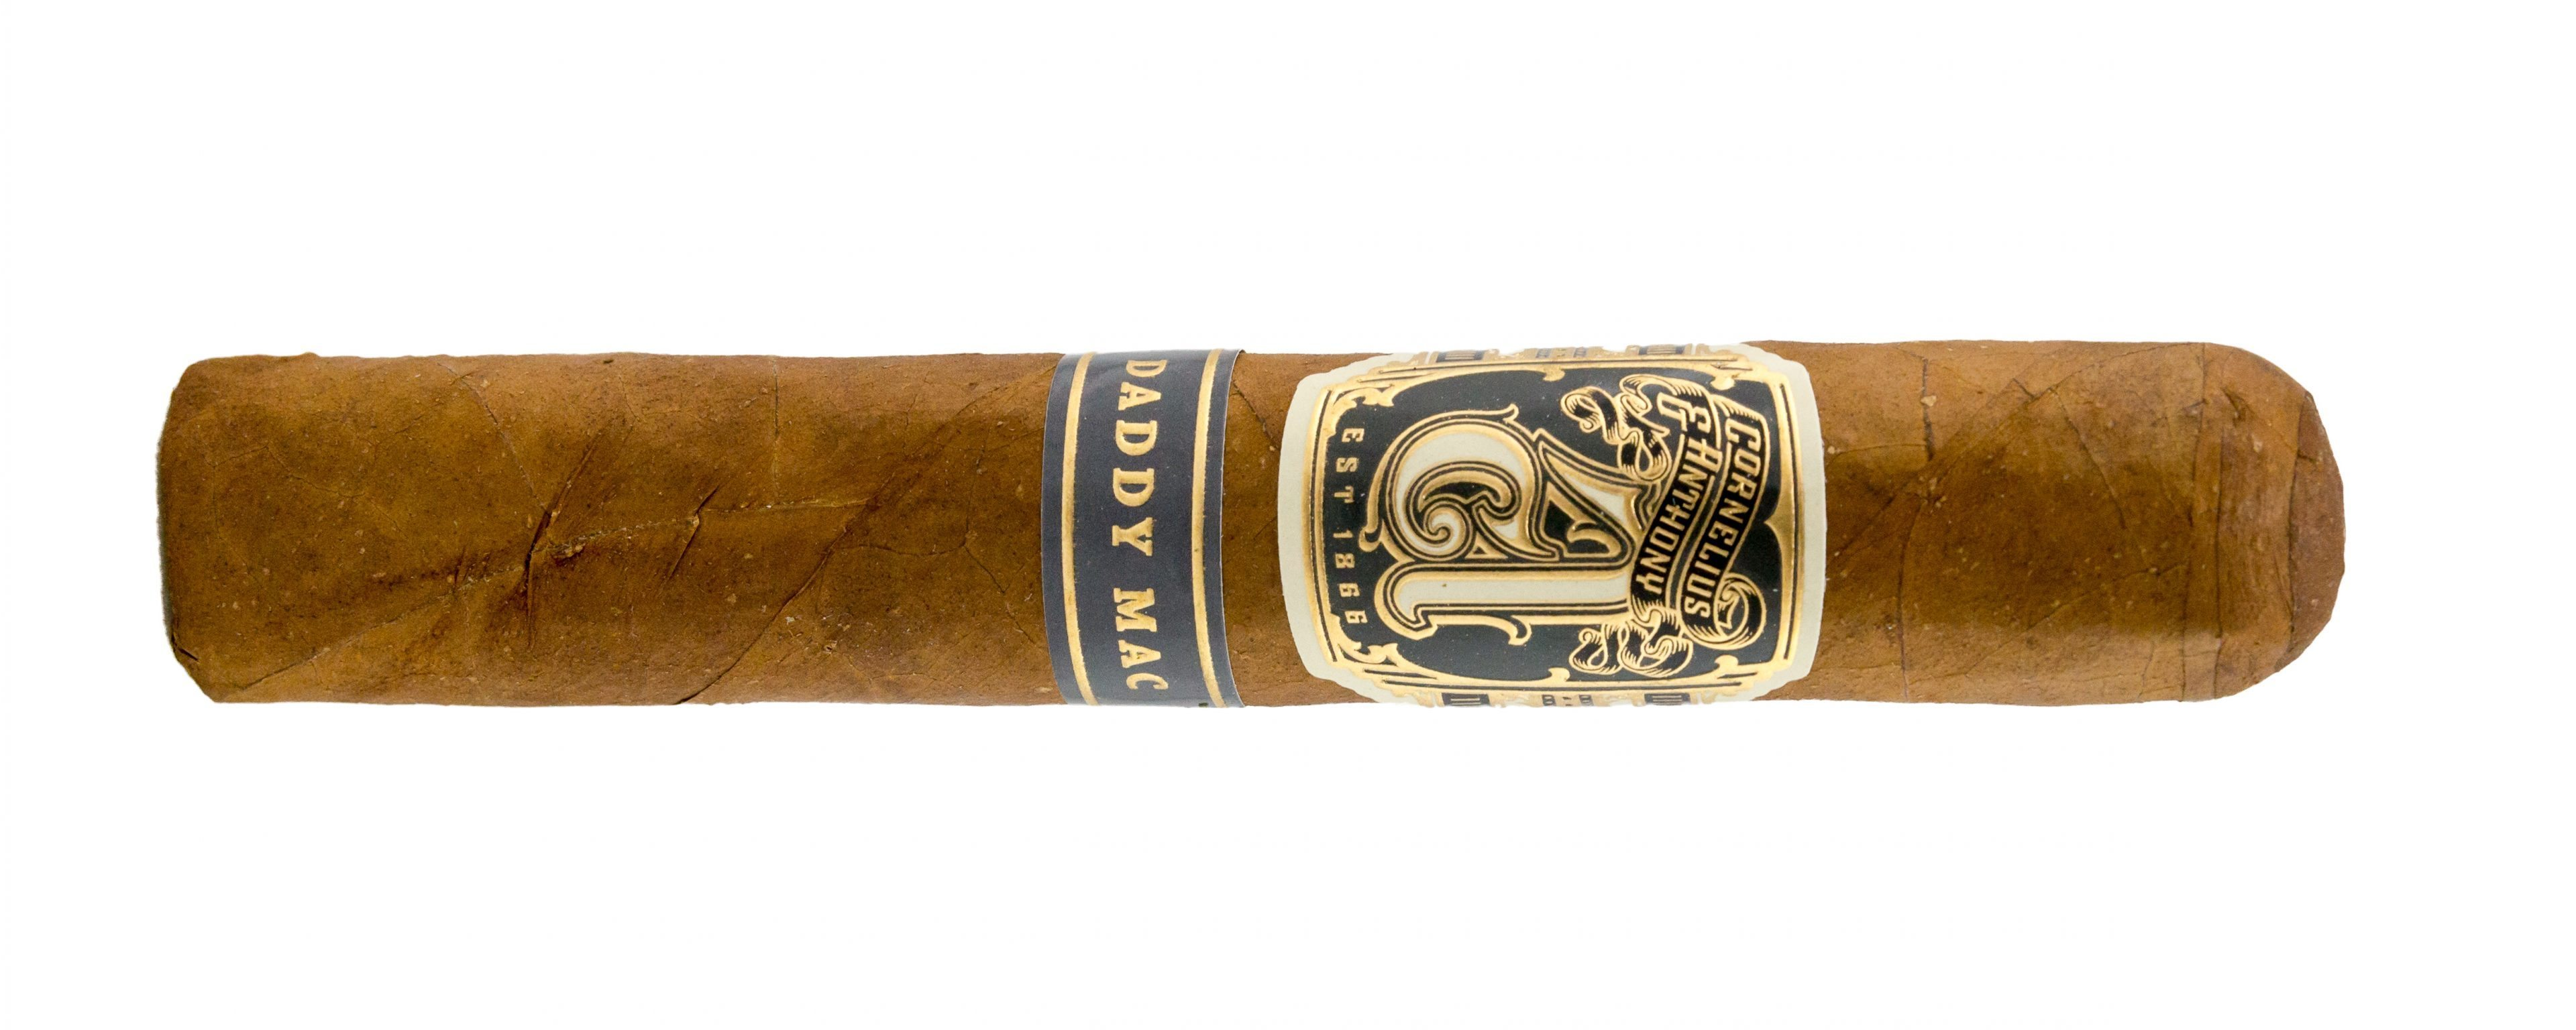 Blind Cigar Review: Cornelius & Anthony | Daddy Mac Robusto